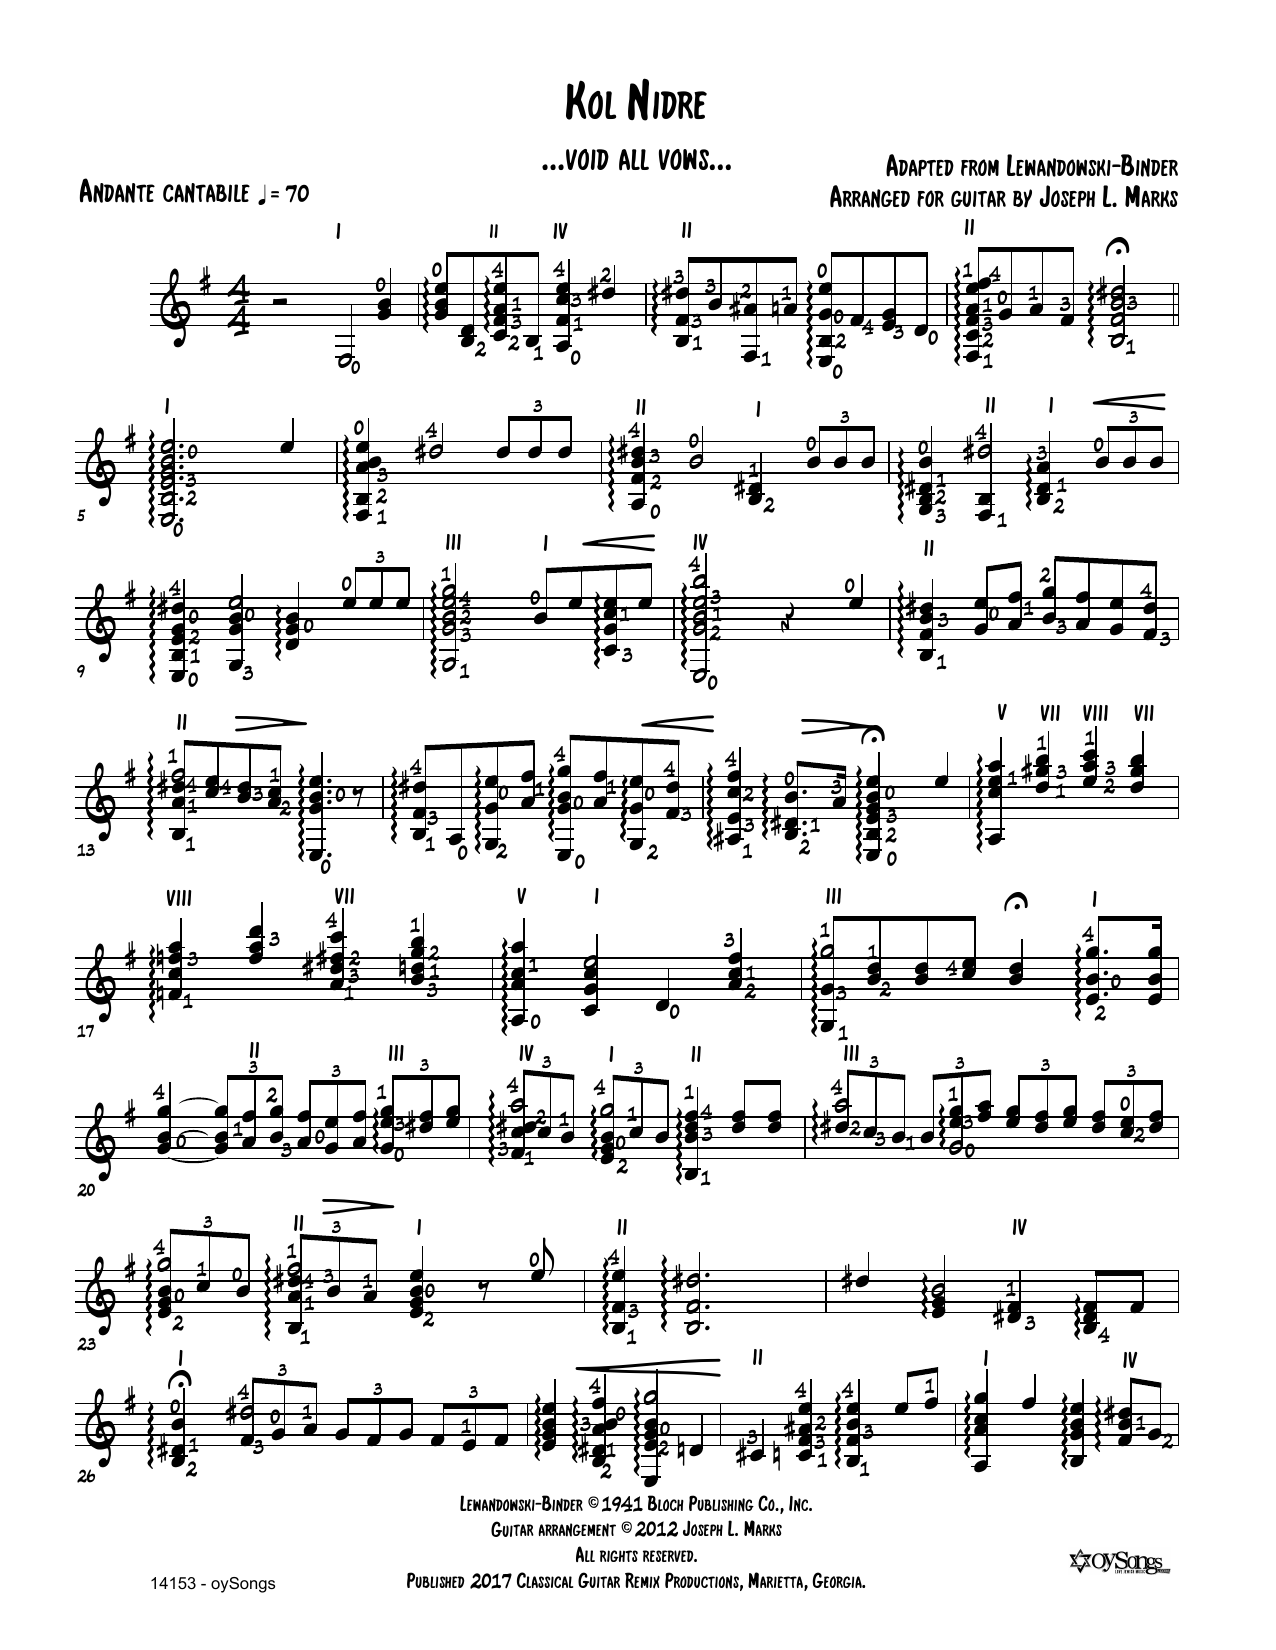 Louis Lewandowski Kol Nidre (arr. Joe Marks) sheet music preview music notes and score for Solo Guitar Tab including 2 page(s)